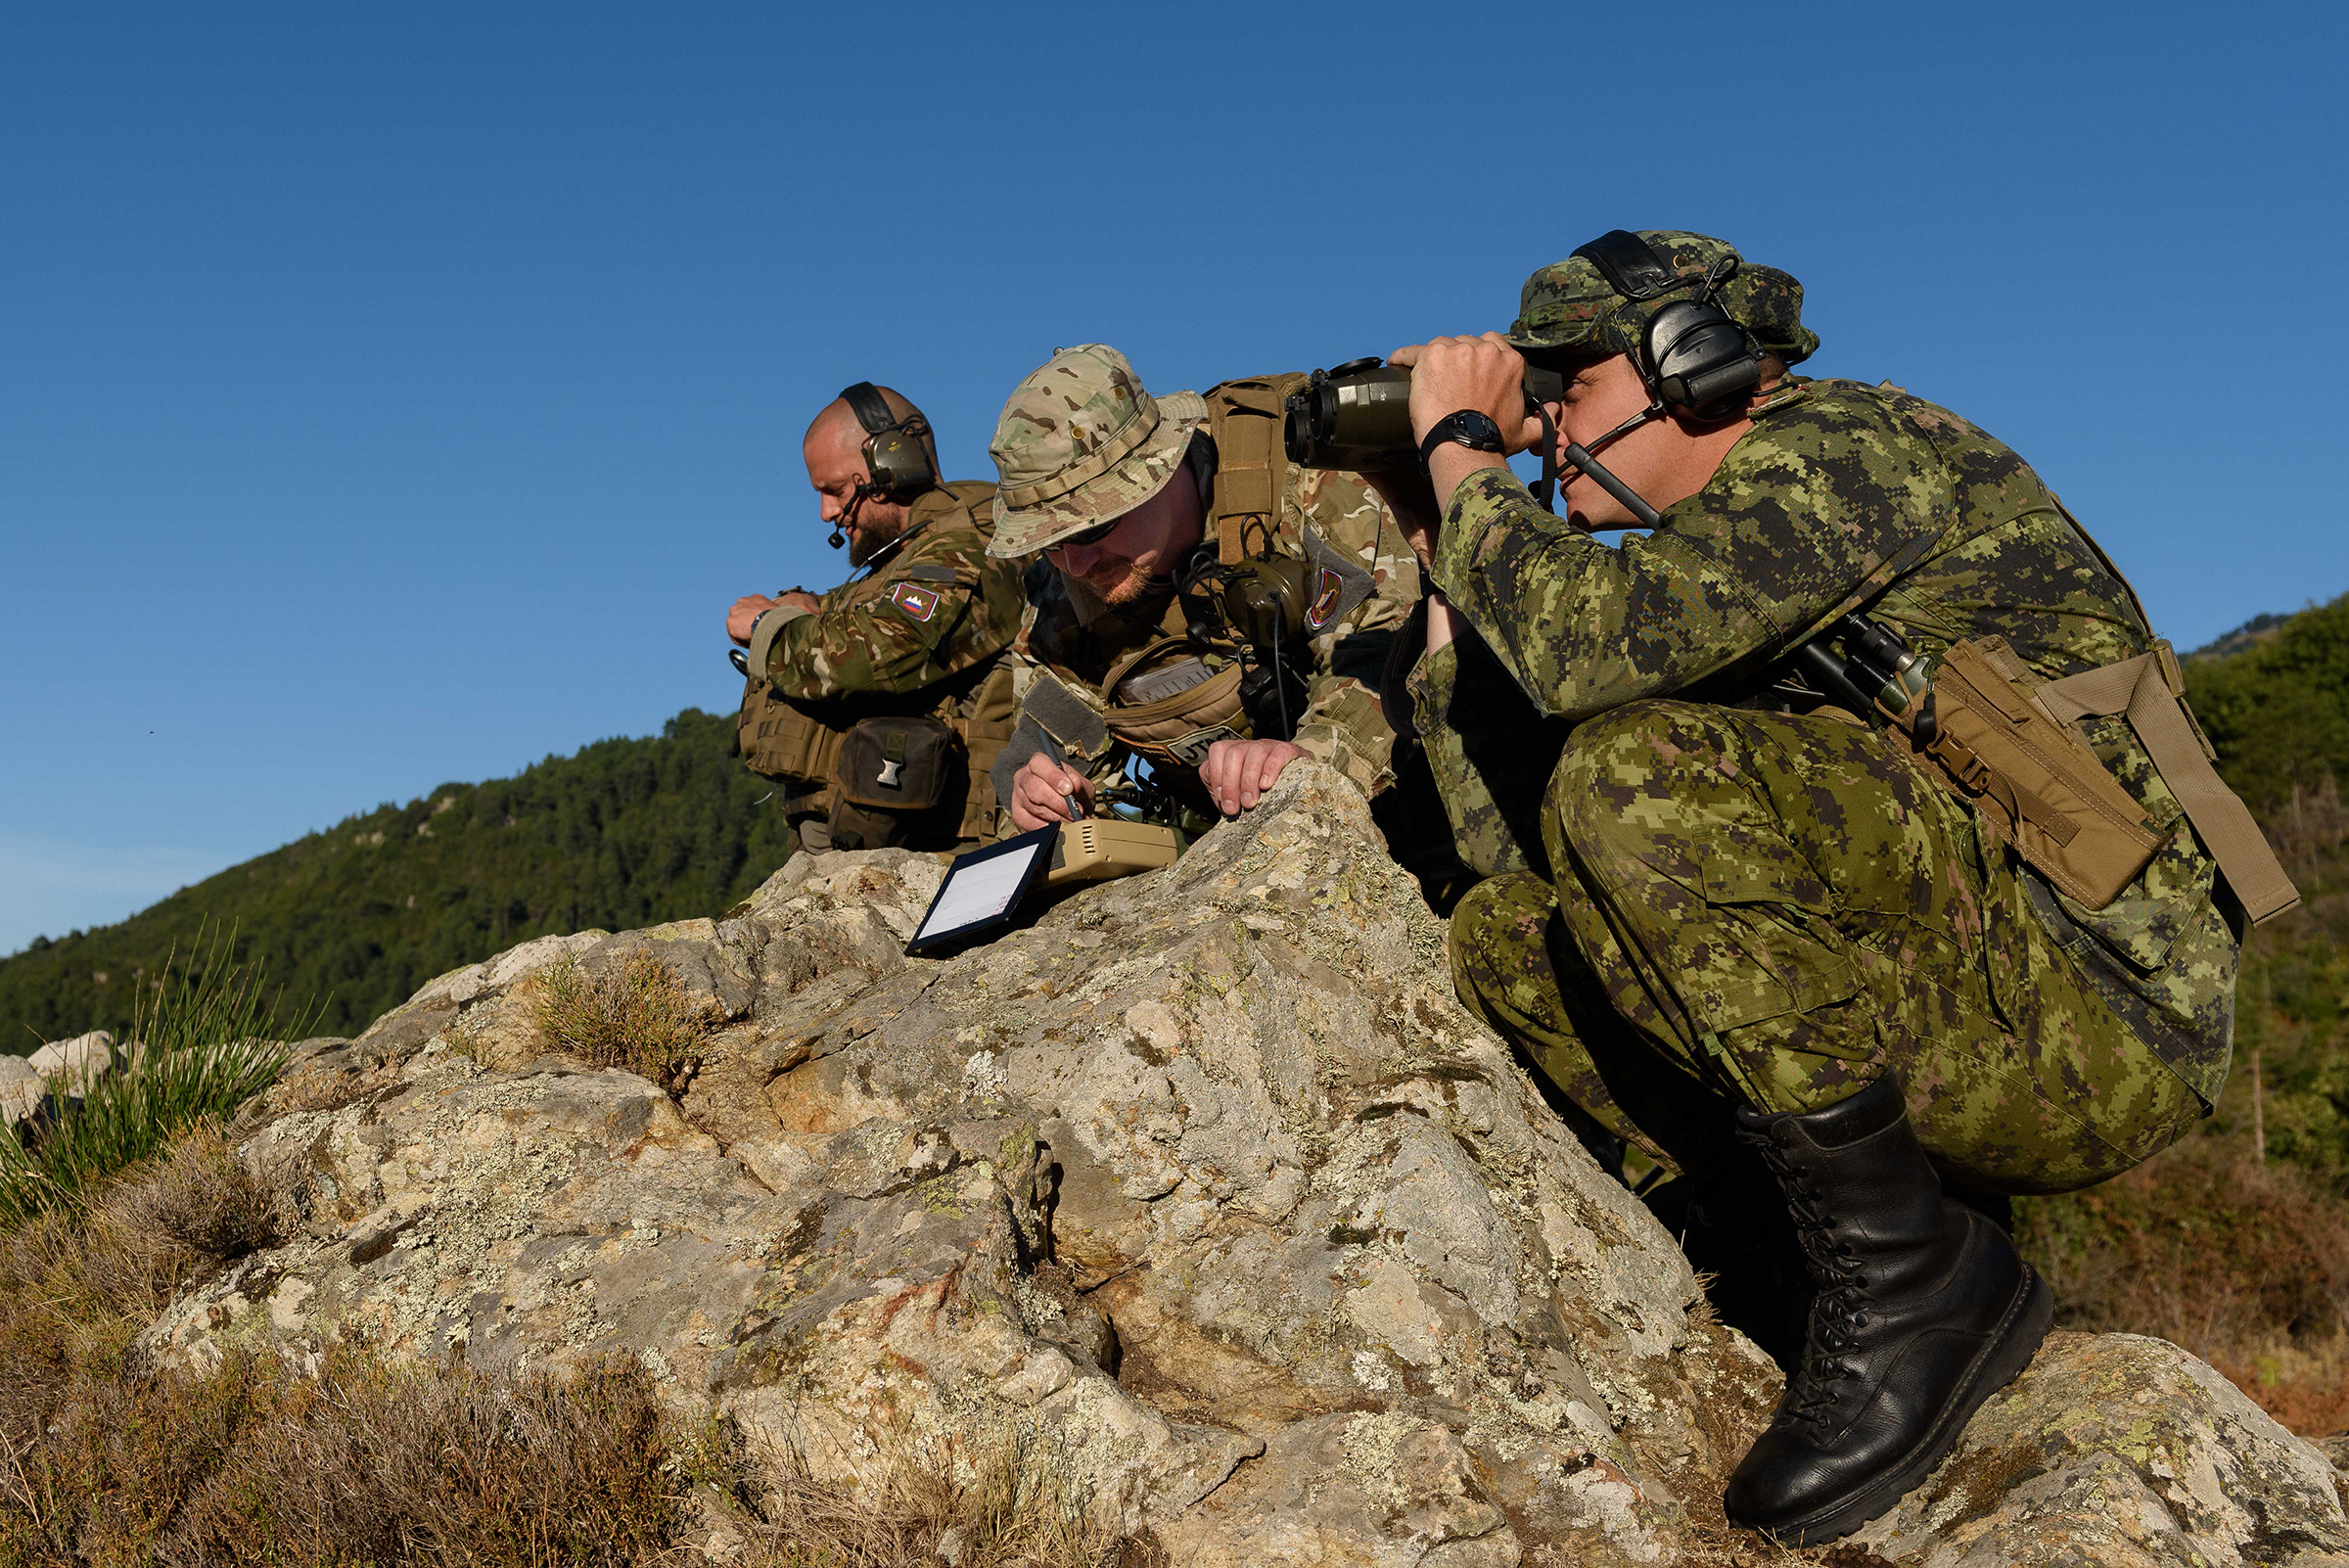 On September 22, 2017, Corporal Mathew Hall (right) observes the Slovenian joint terminal air controller team's area of responsibility near the city of Ciamannacce, Corsica, before their evaluation during SERPENTEX 2017. PHOTO: Master Corporal Louis Brunet, BN53-2017-0006-003